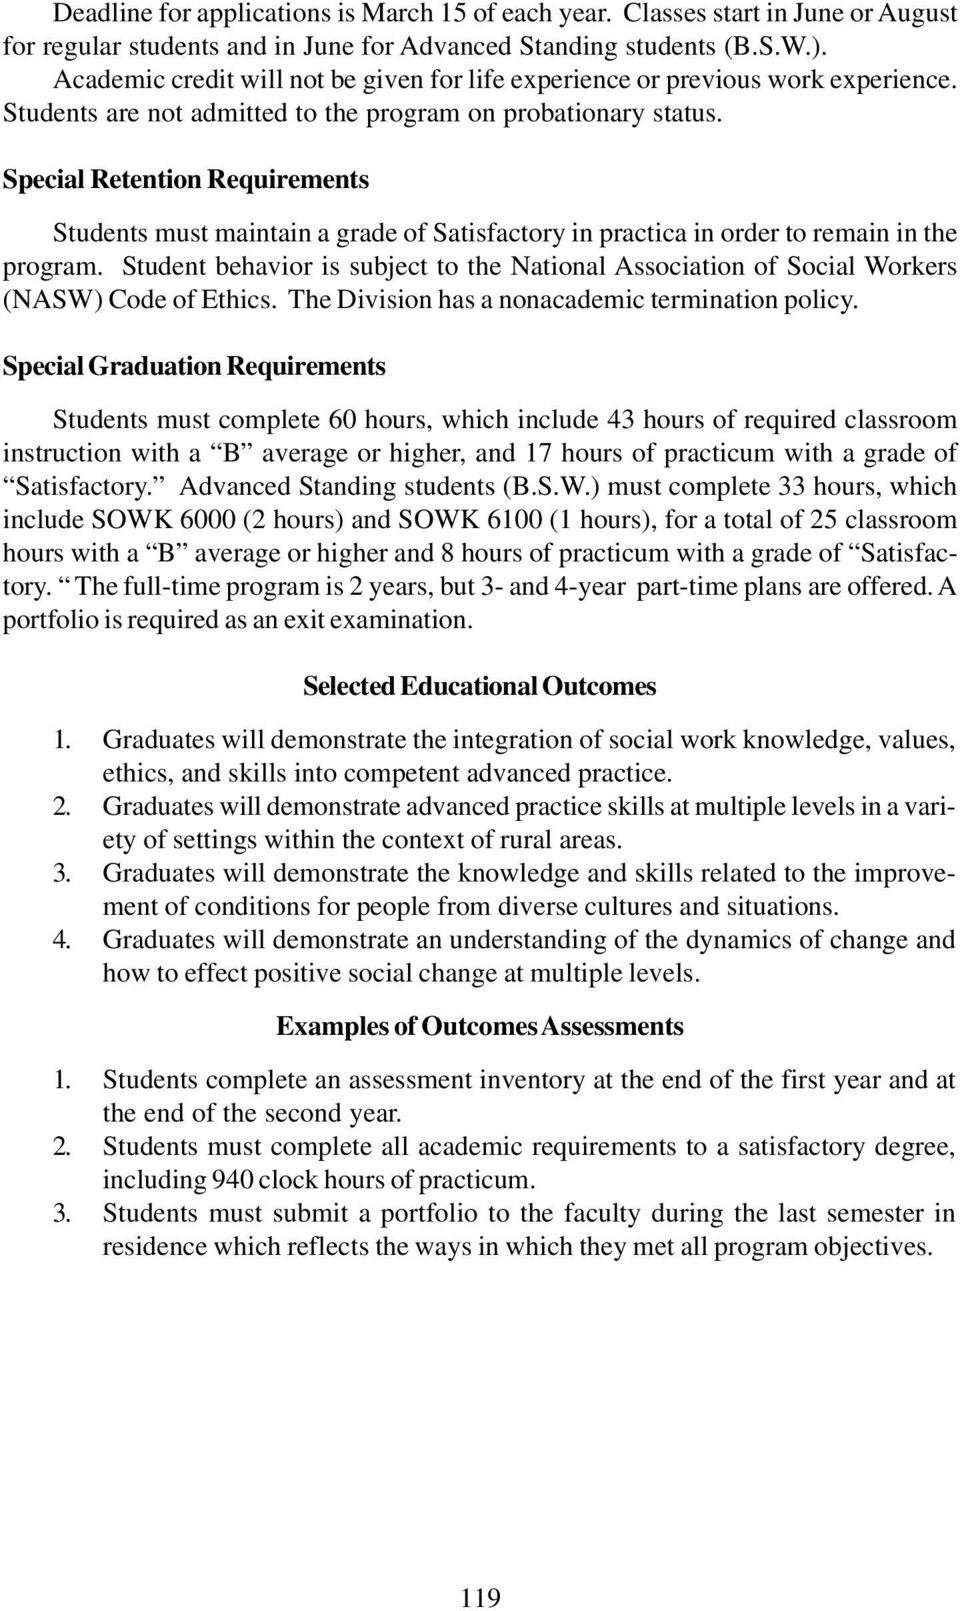 Special Retention Requirements Students must maintain a grade of Satisfactory in practica in order to remain in the program.